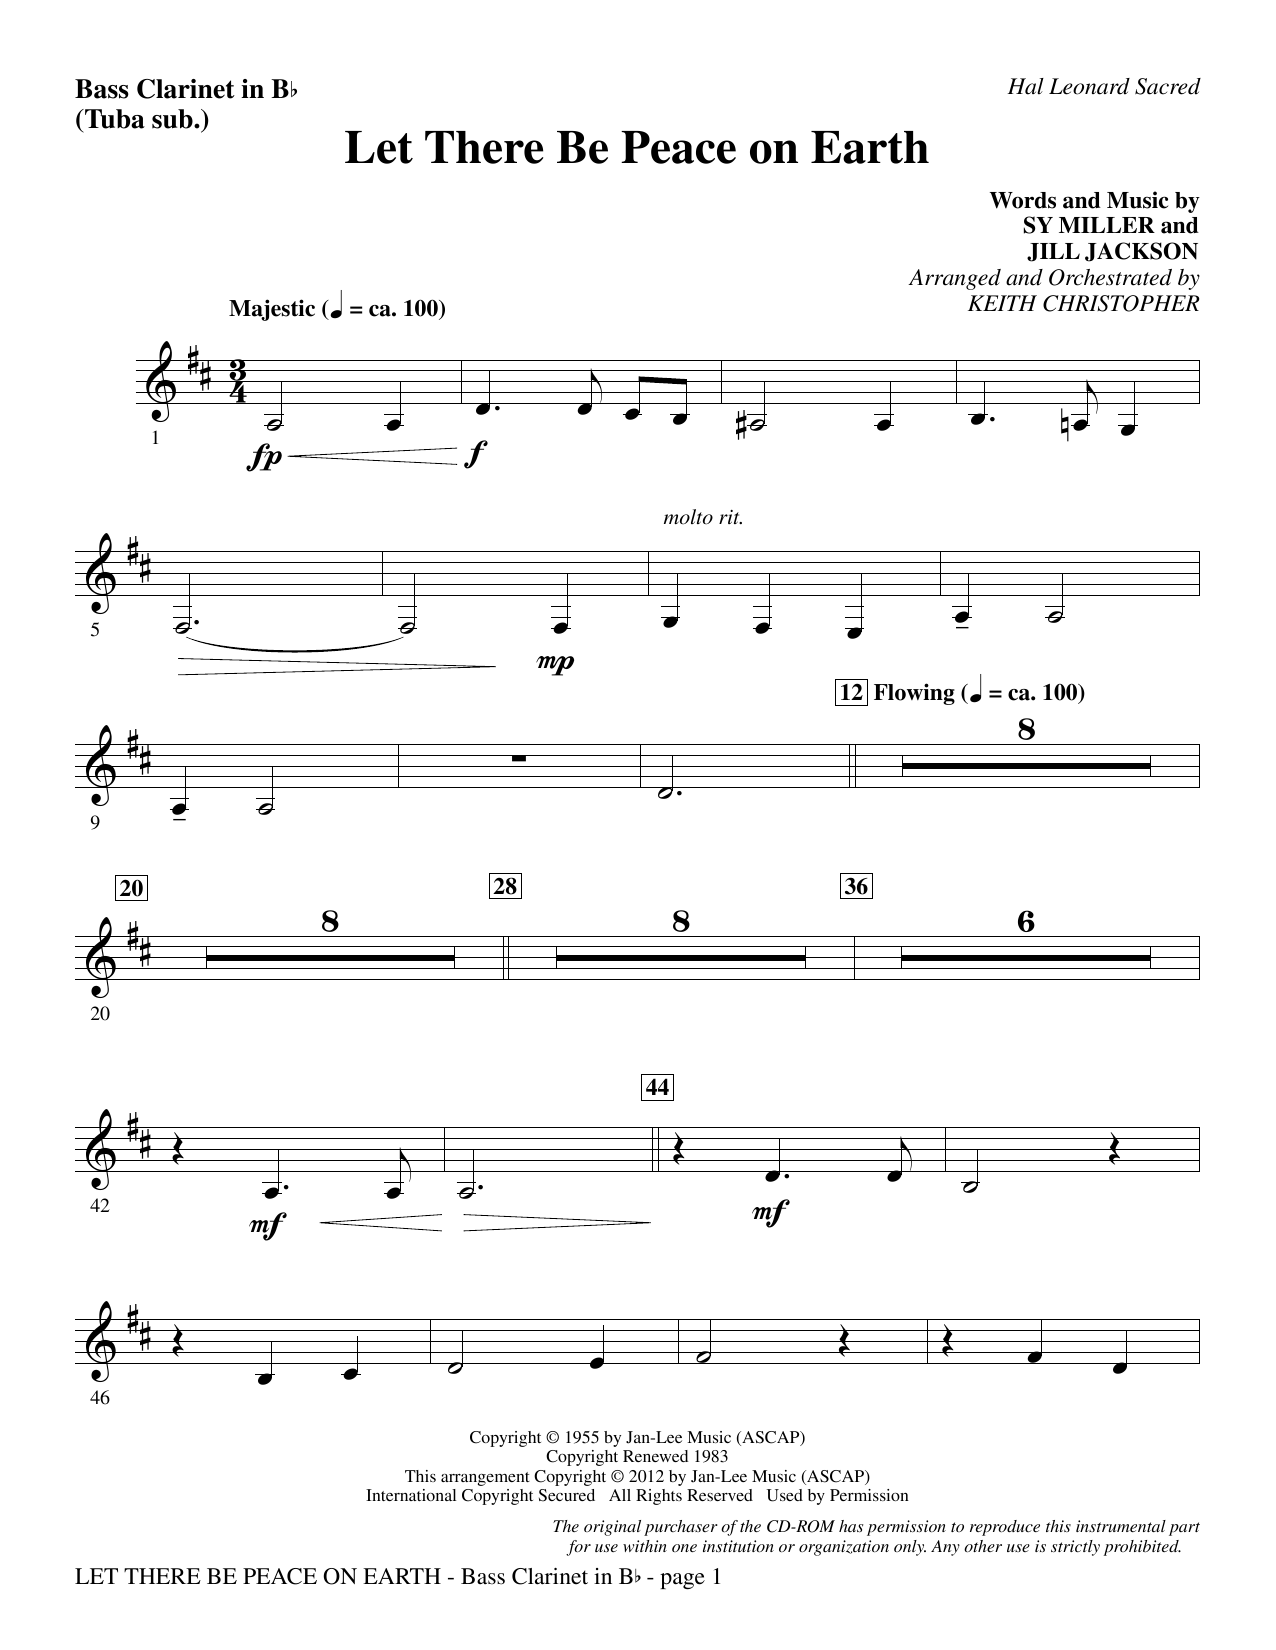 Let There Be Peace On Earth - Bass Clarinet (sub. Tuba) Sheet Music